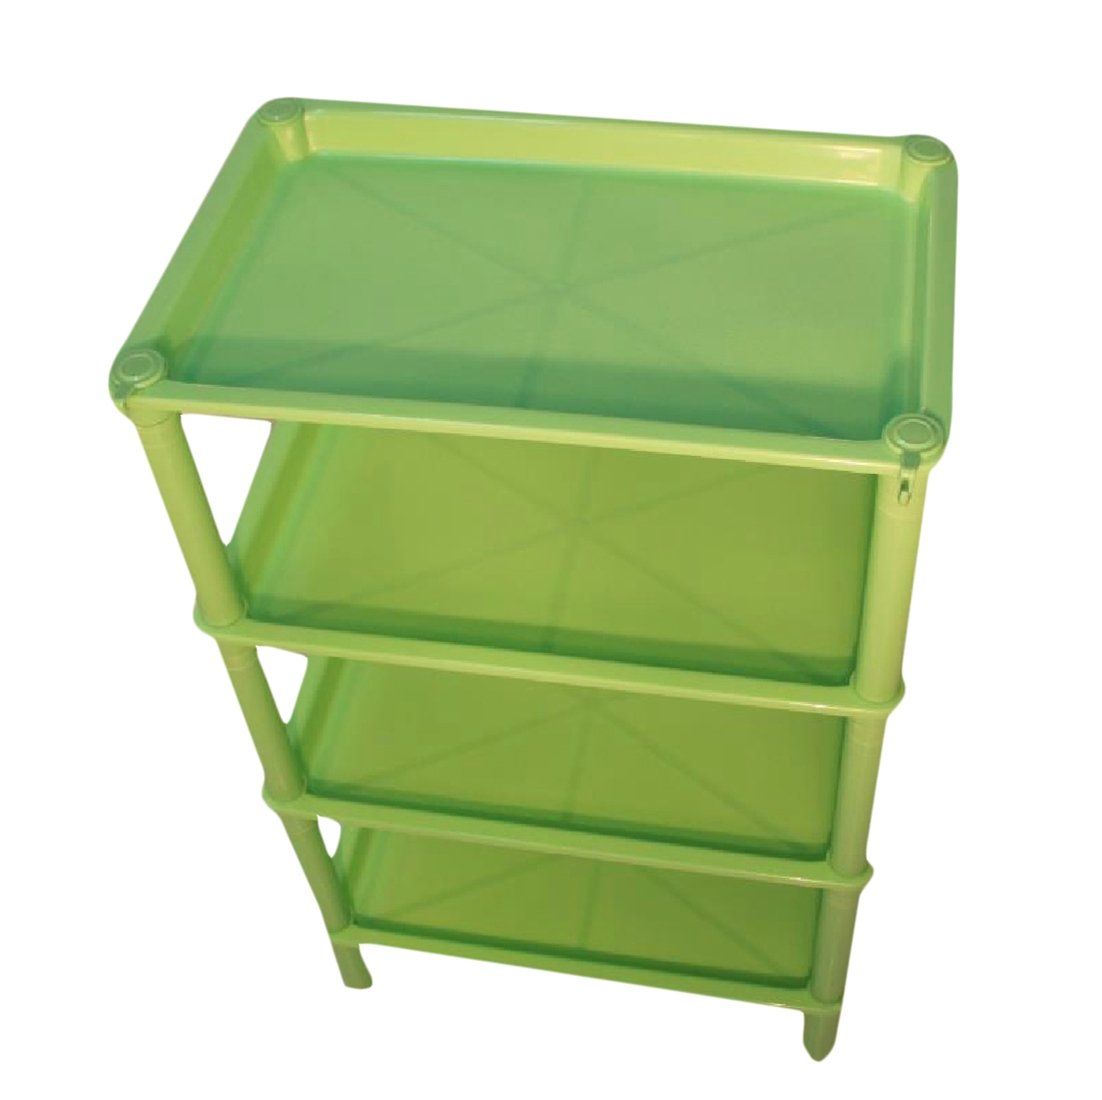 Tootless Shelving Unit Wire Storage Modular Supreme 4 Tier Purpose Wheels Bookcase AS3 4 shelves